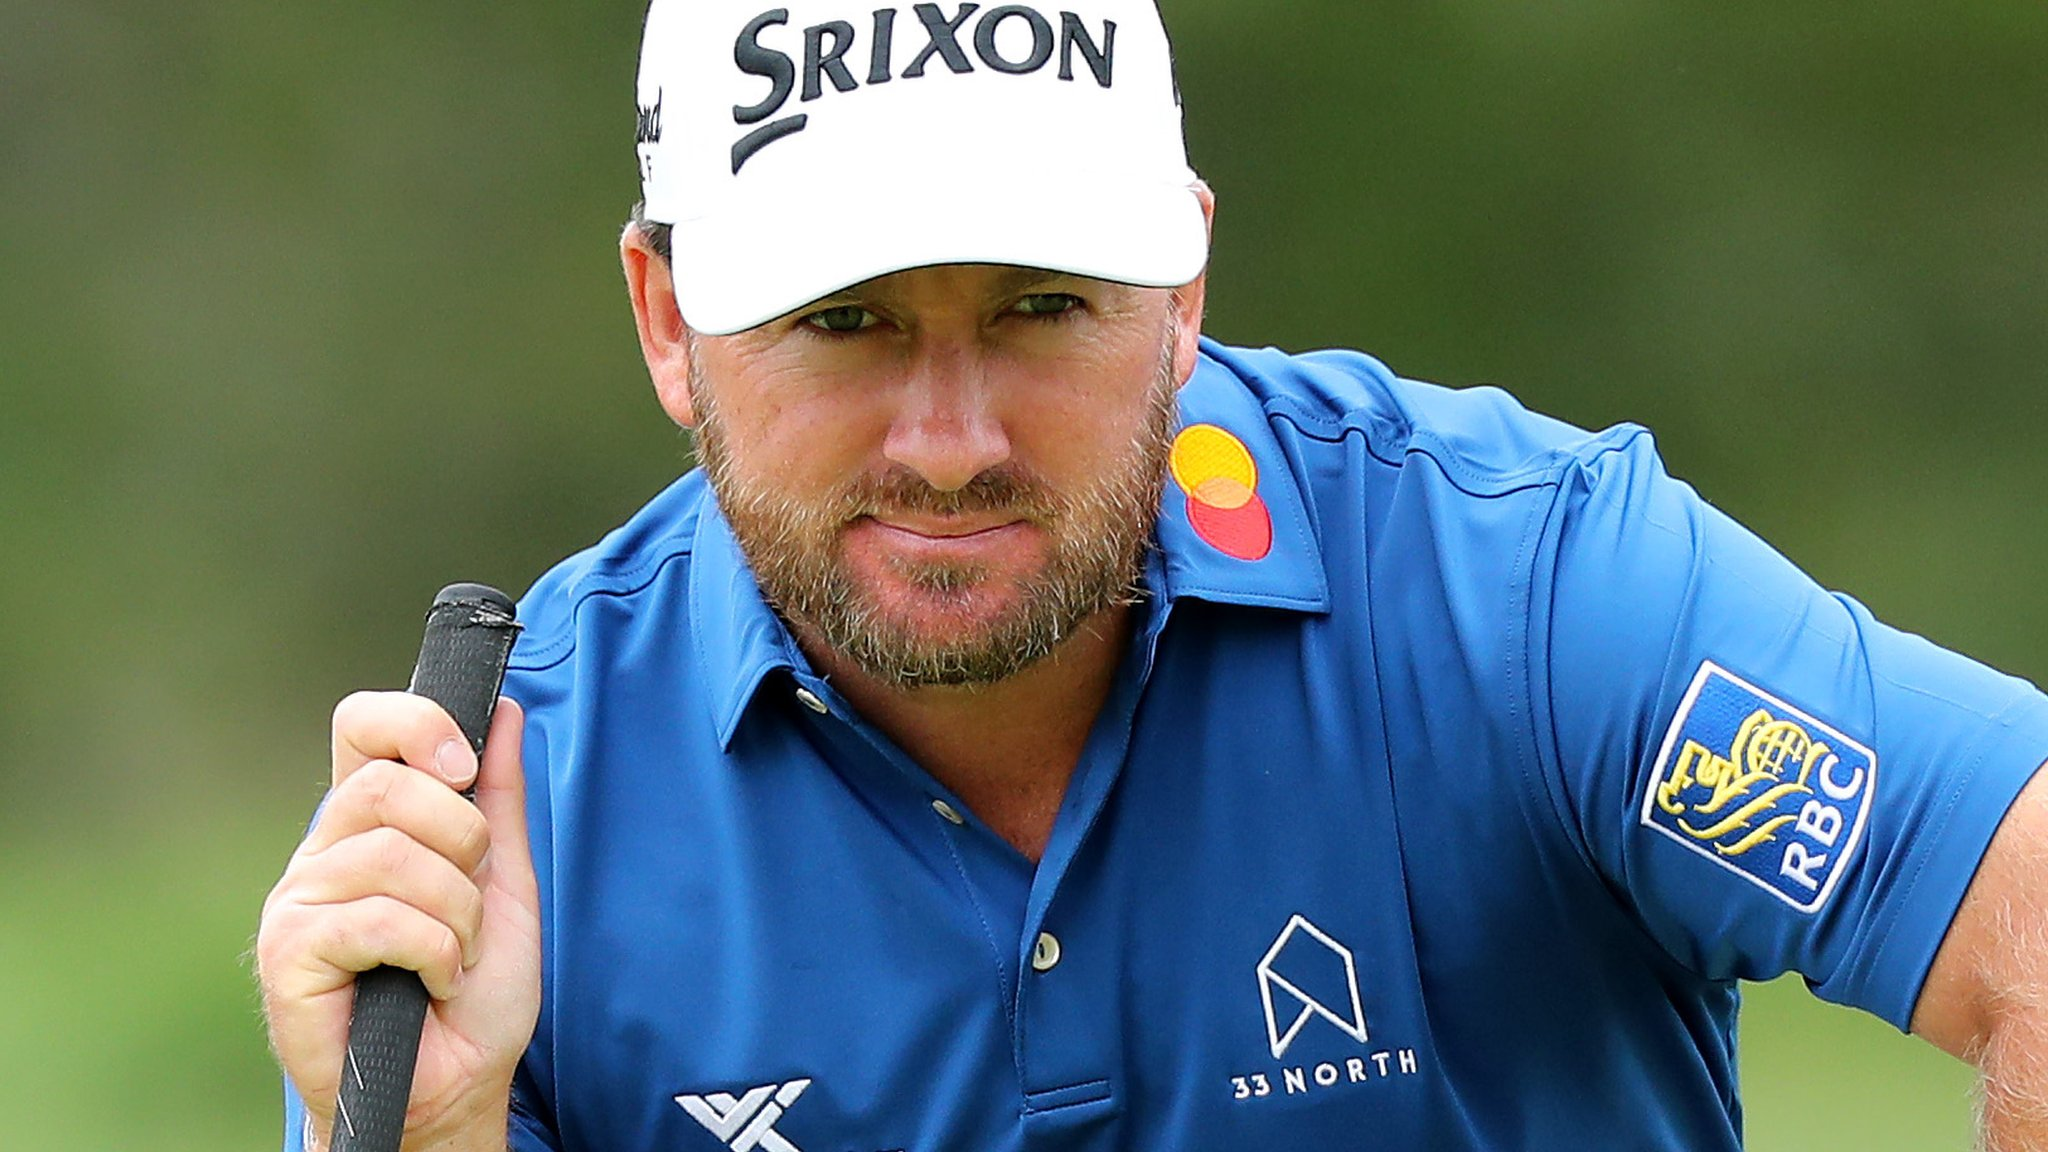 Graeme McDowell: NI golfer looking to continue his 'rebuild' after 16th place at US Open